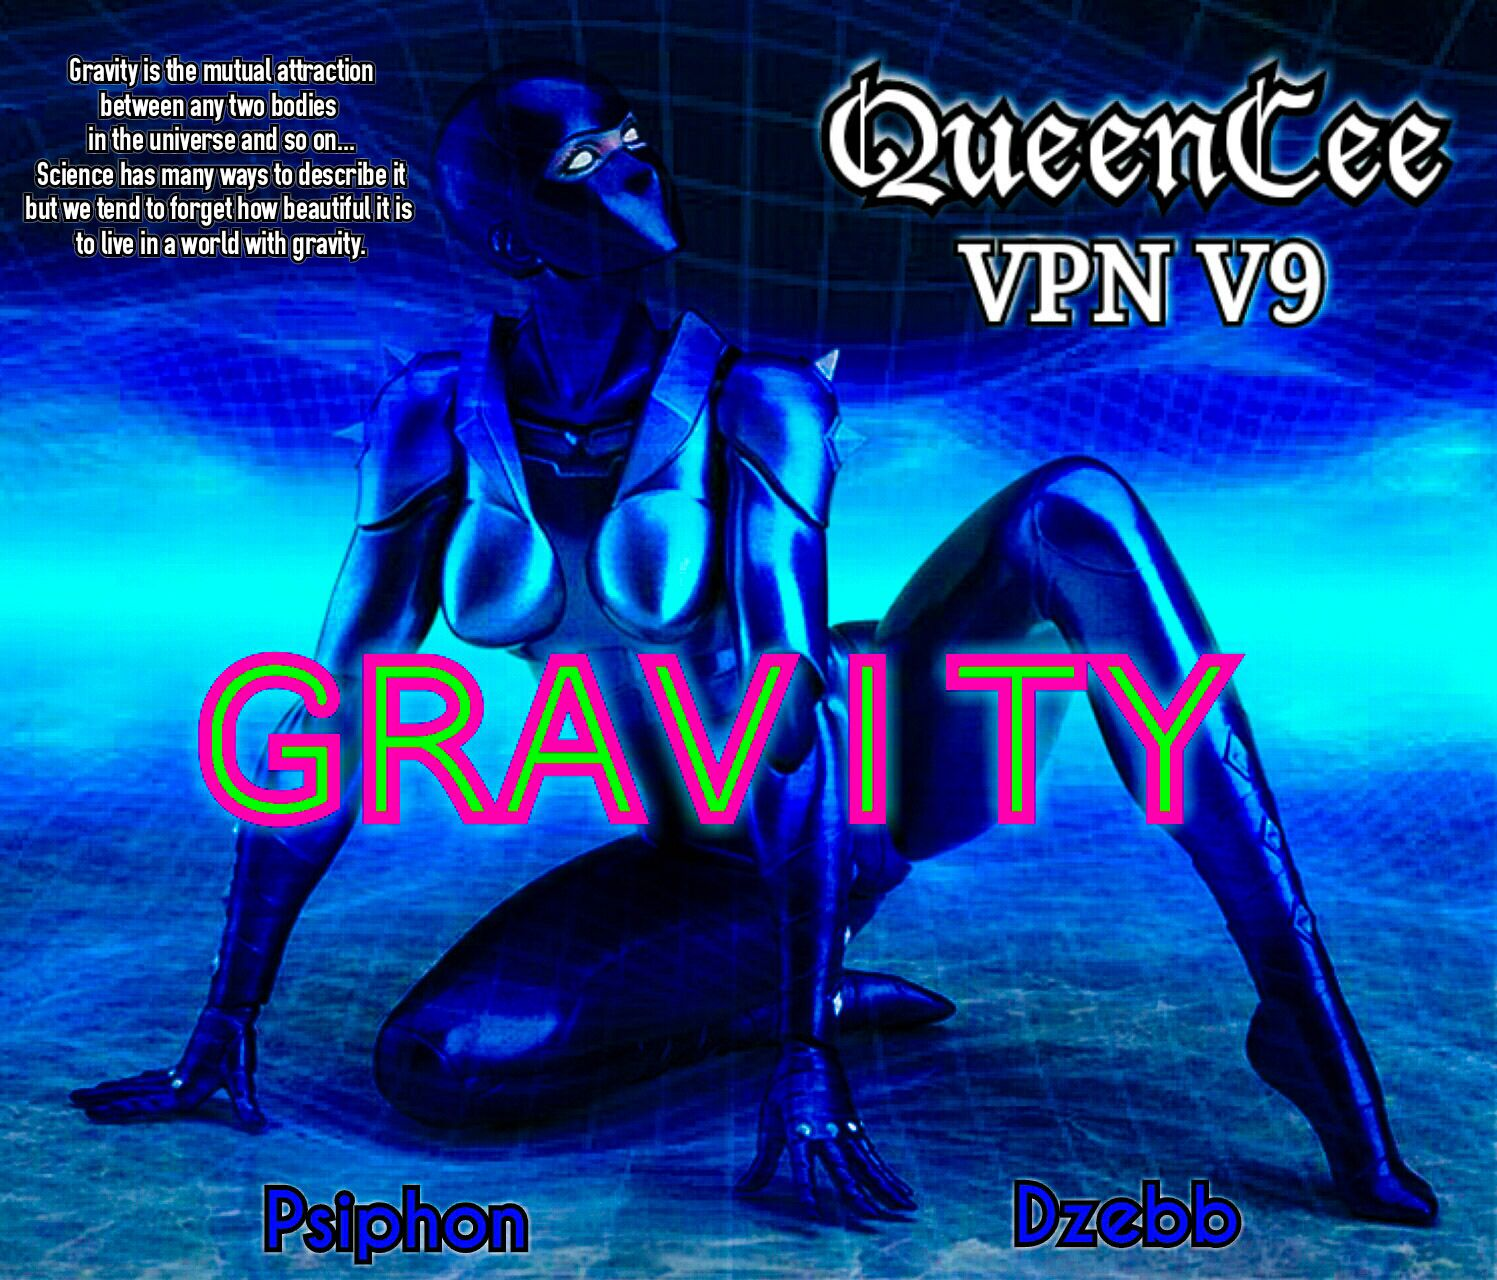 Queencee VPN V9 Gravity Apk Download[Latest] | Android | Iphone